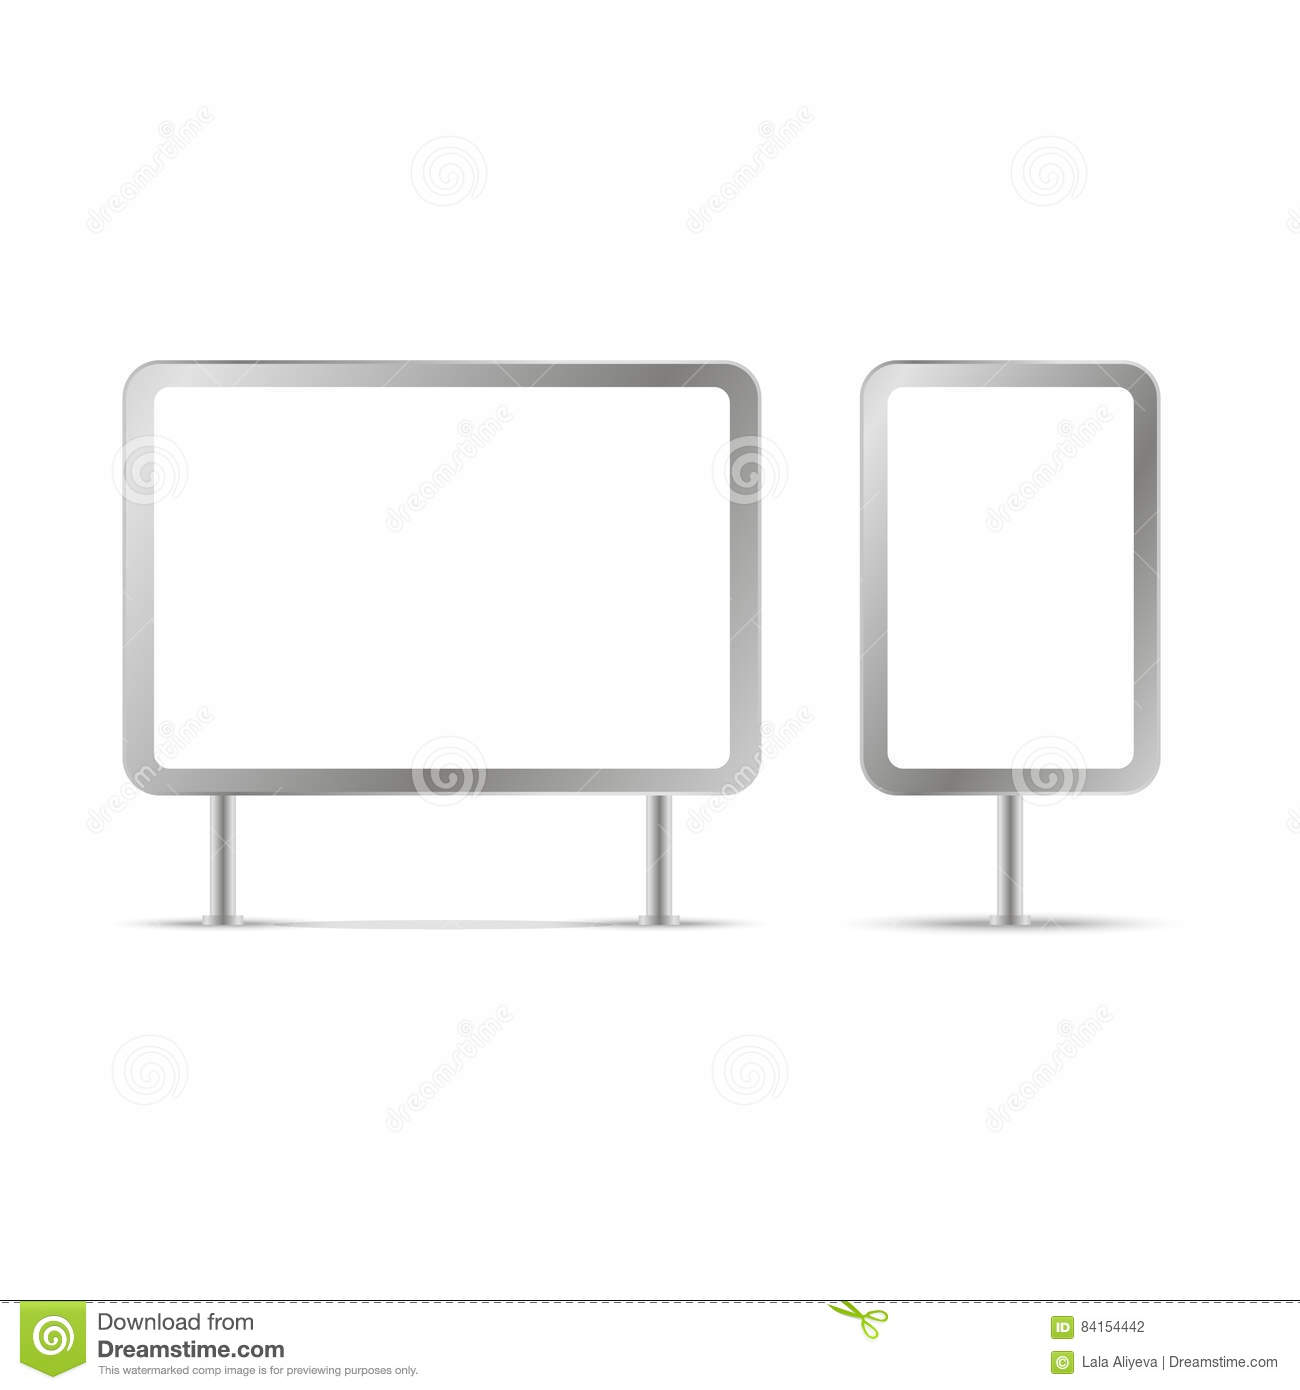 blank billboards and outdoor advertisement templates isolated